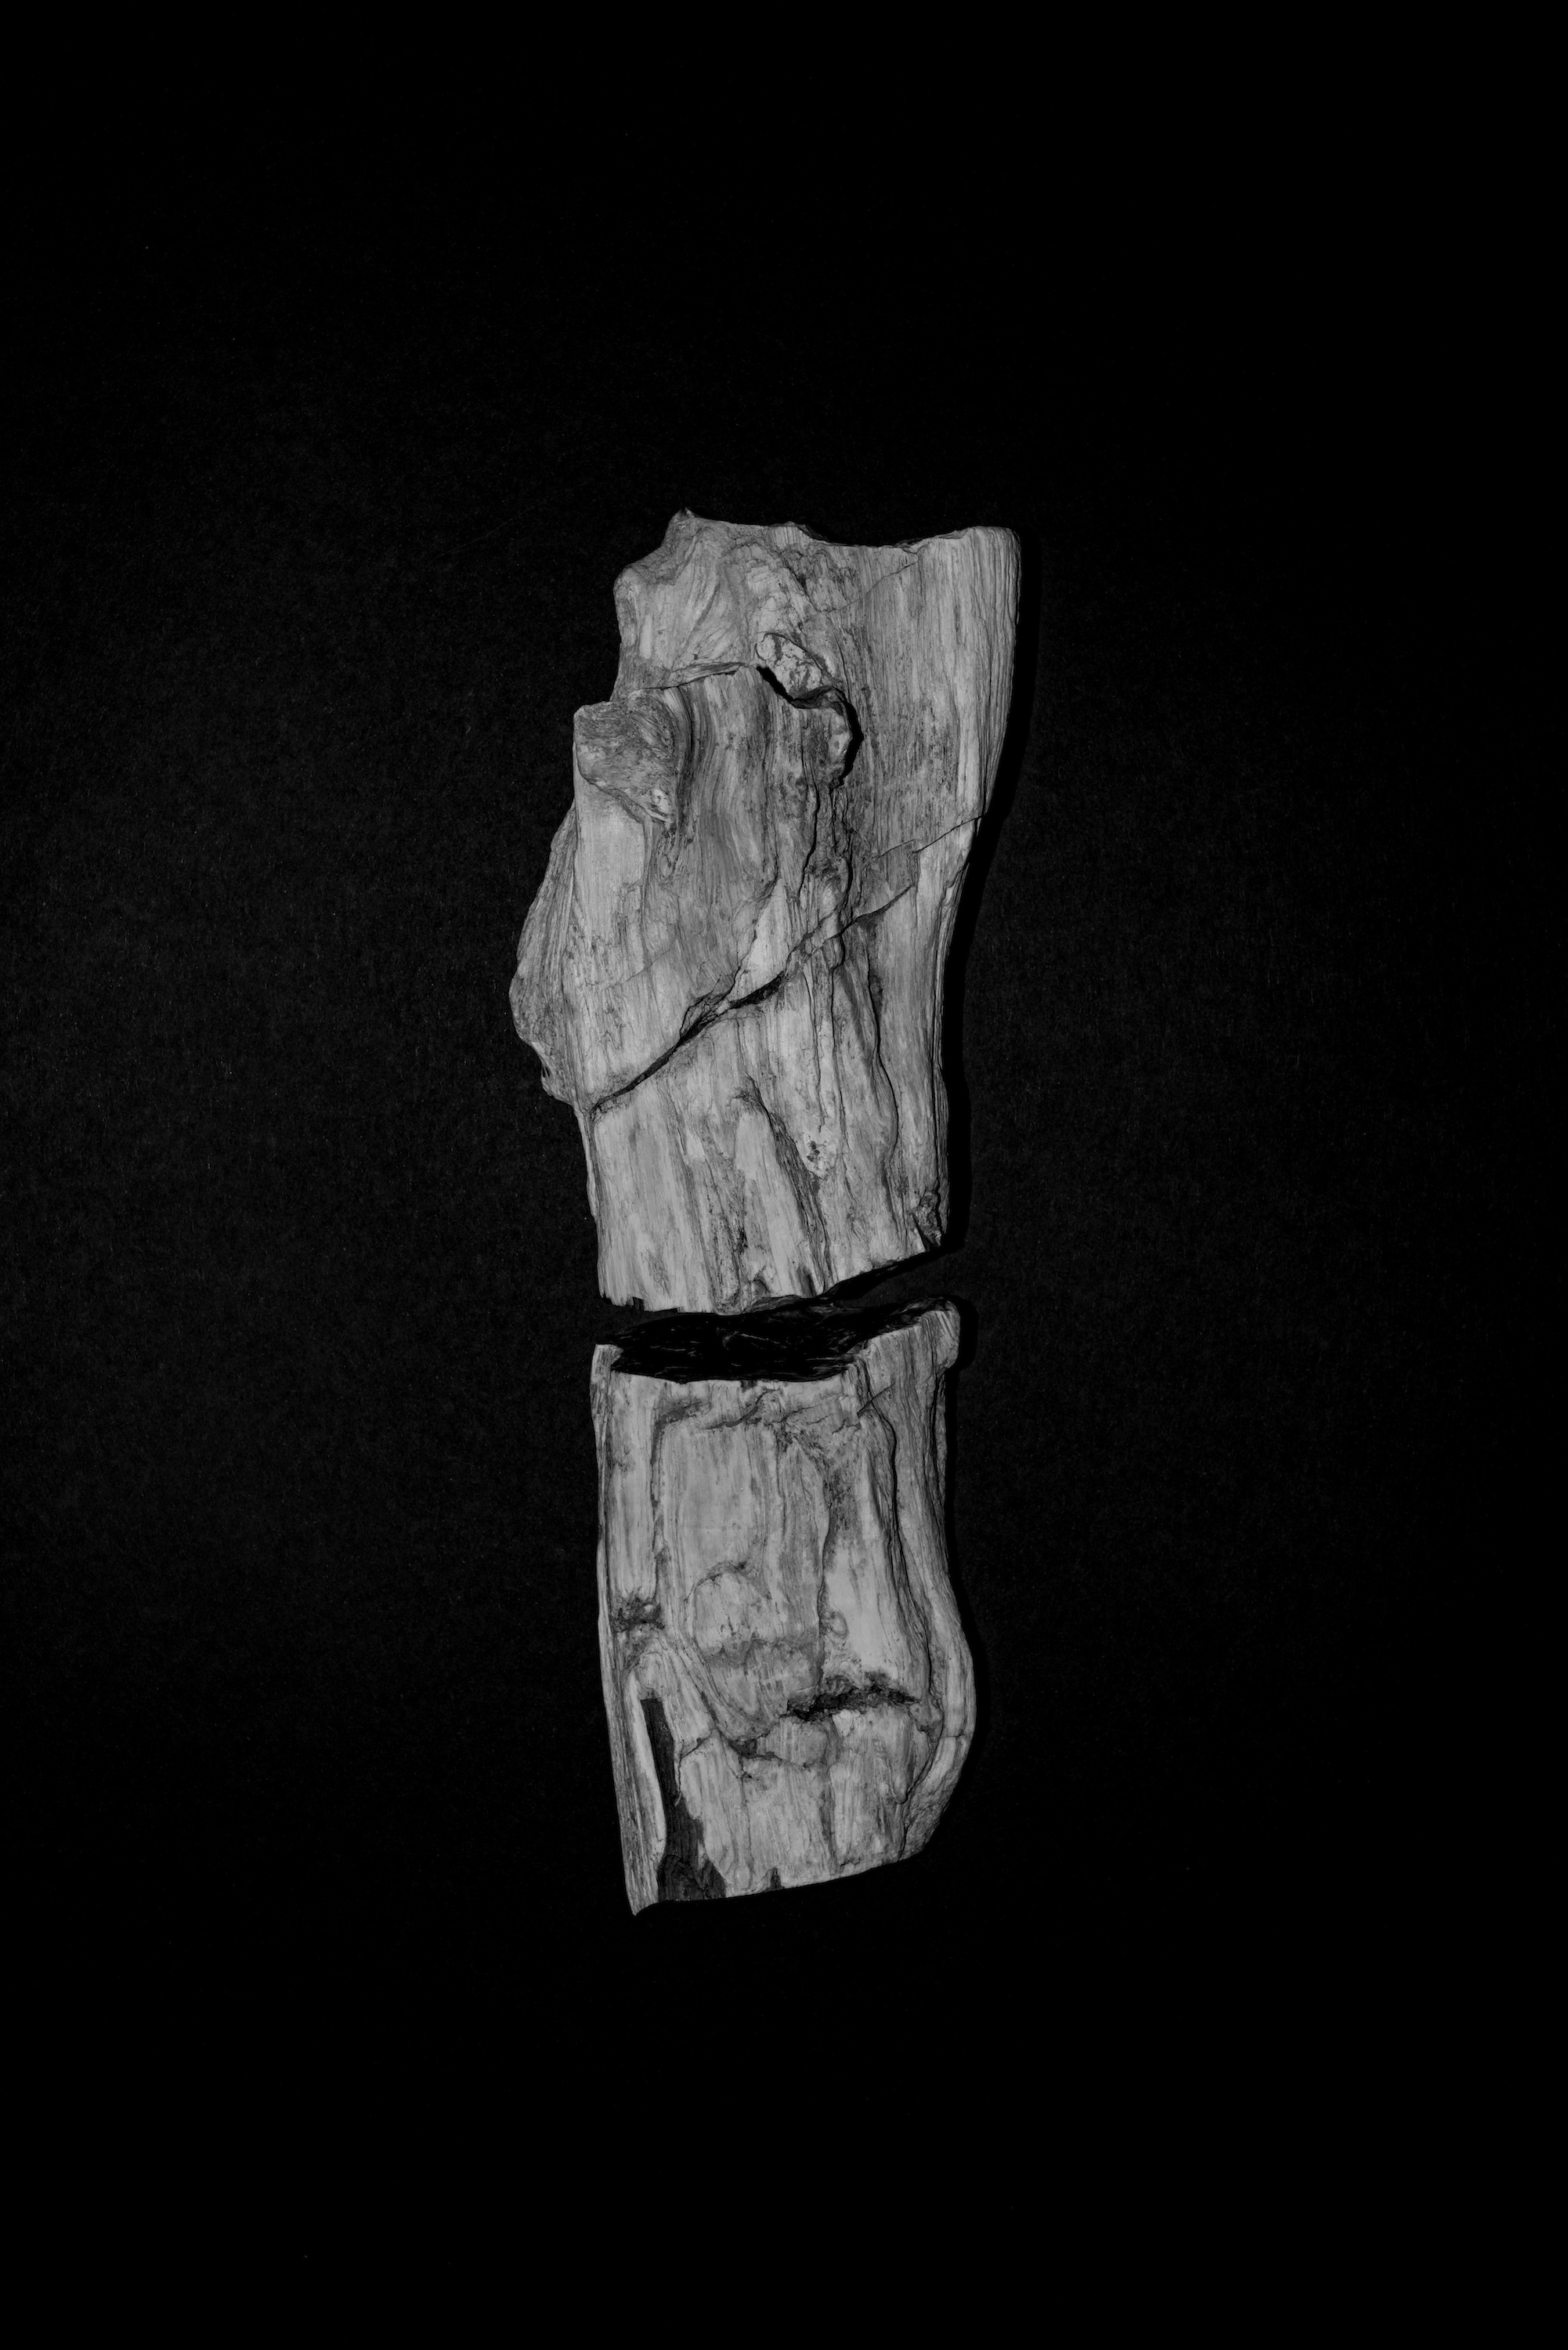 Peter Granser, Fossilized Branch.